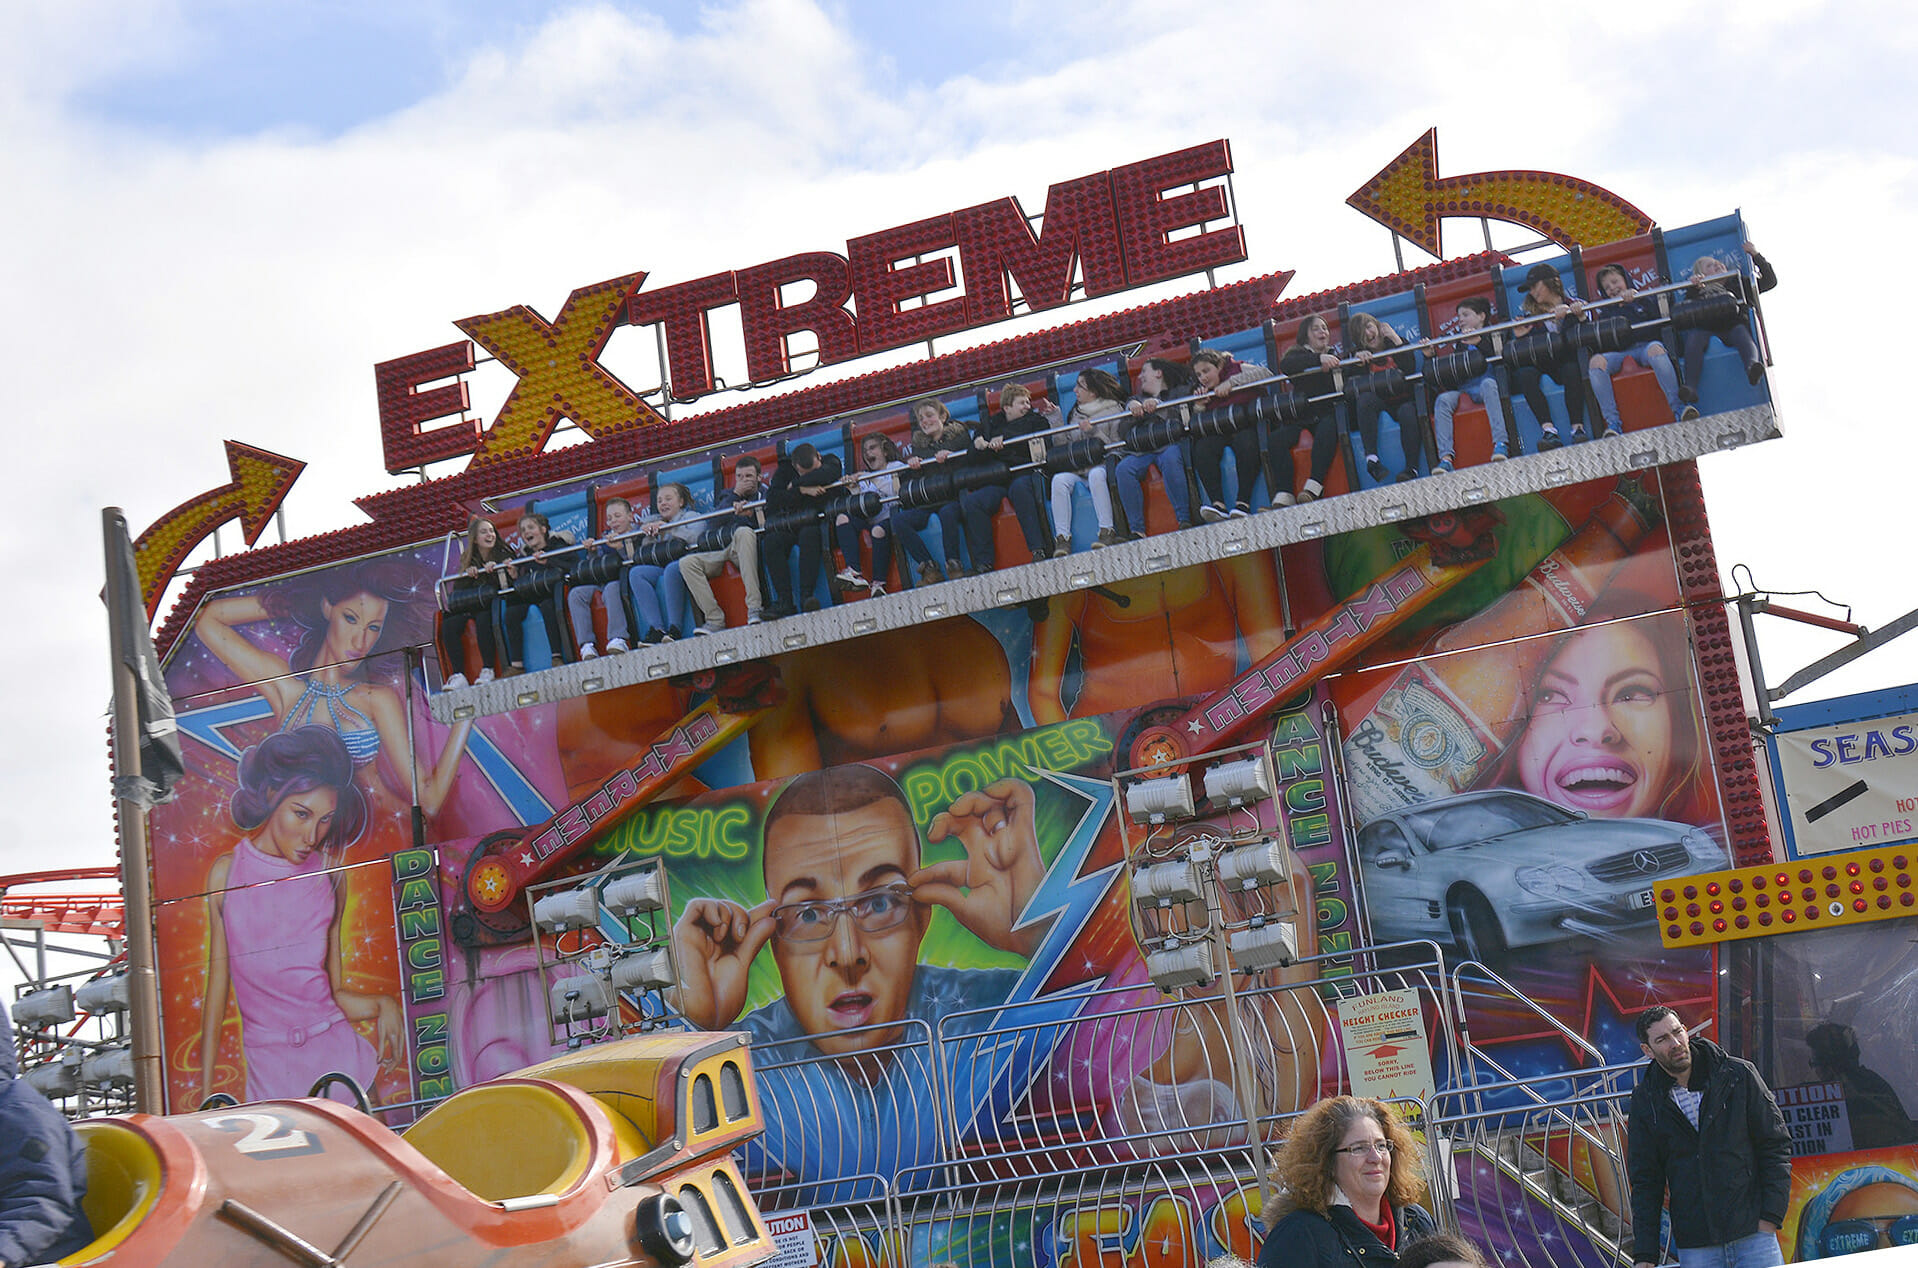 Extreme Fairground ride